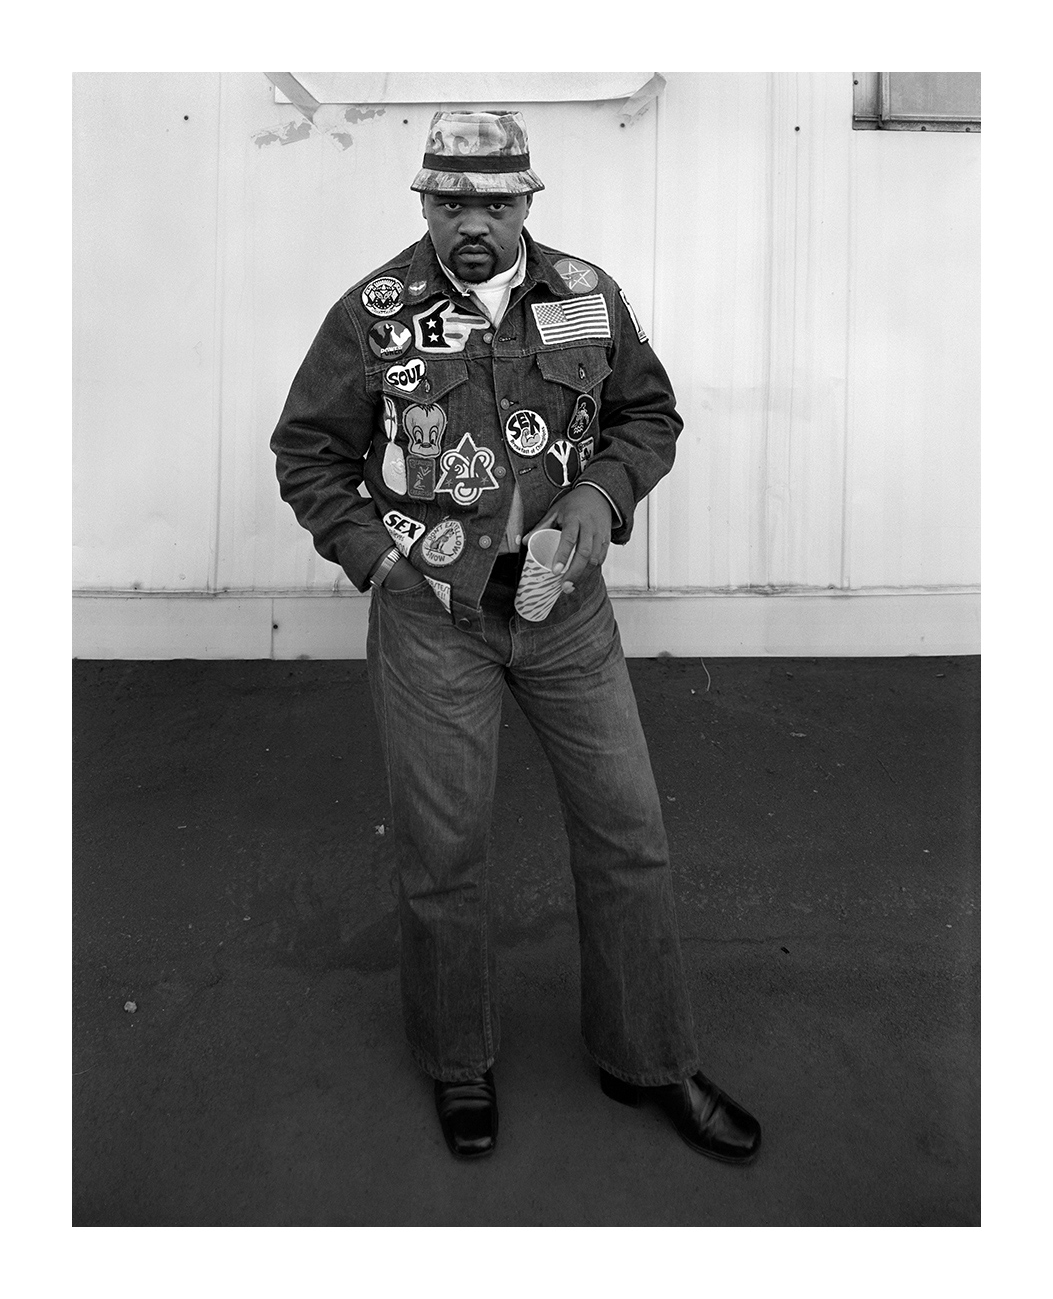 A Man with Many Patches, Detroit, 23 Sept. 1973